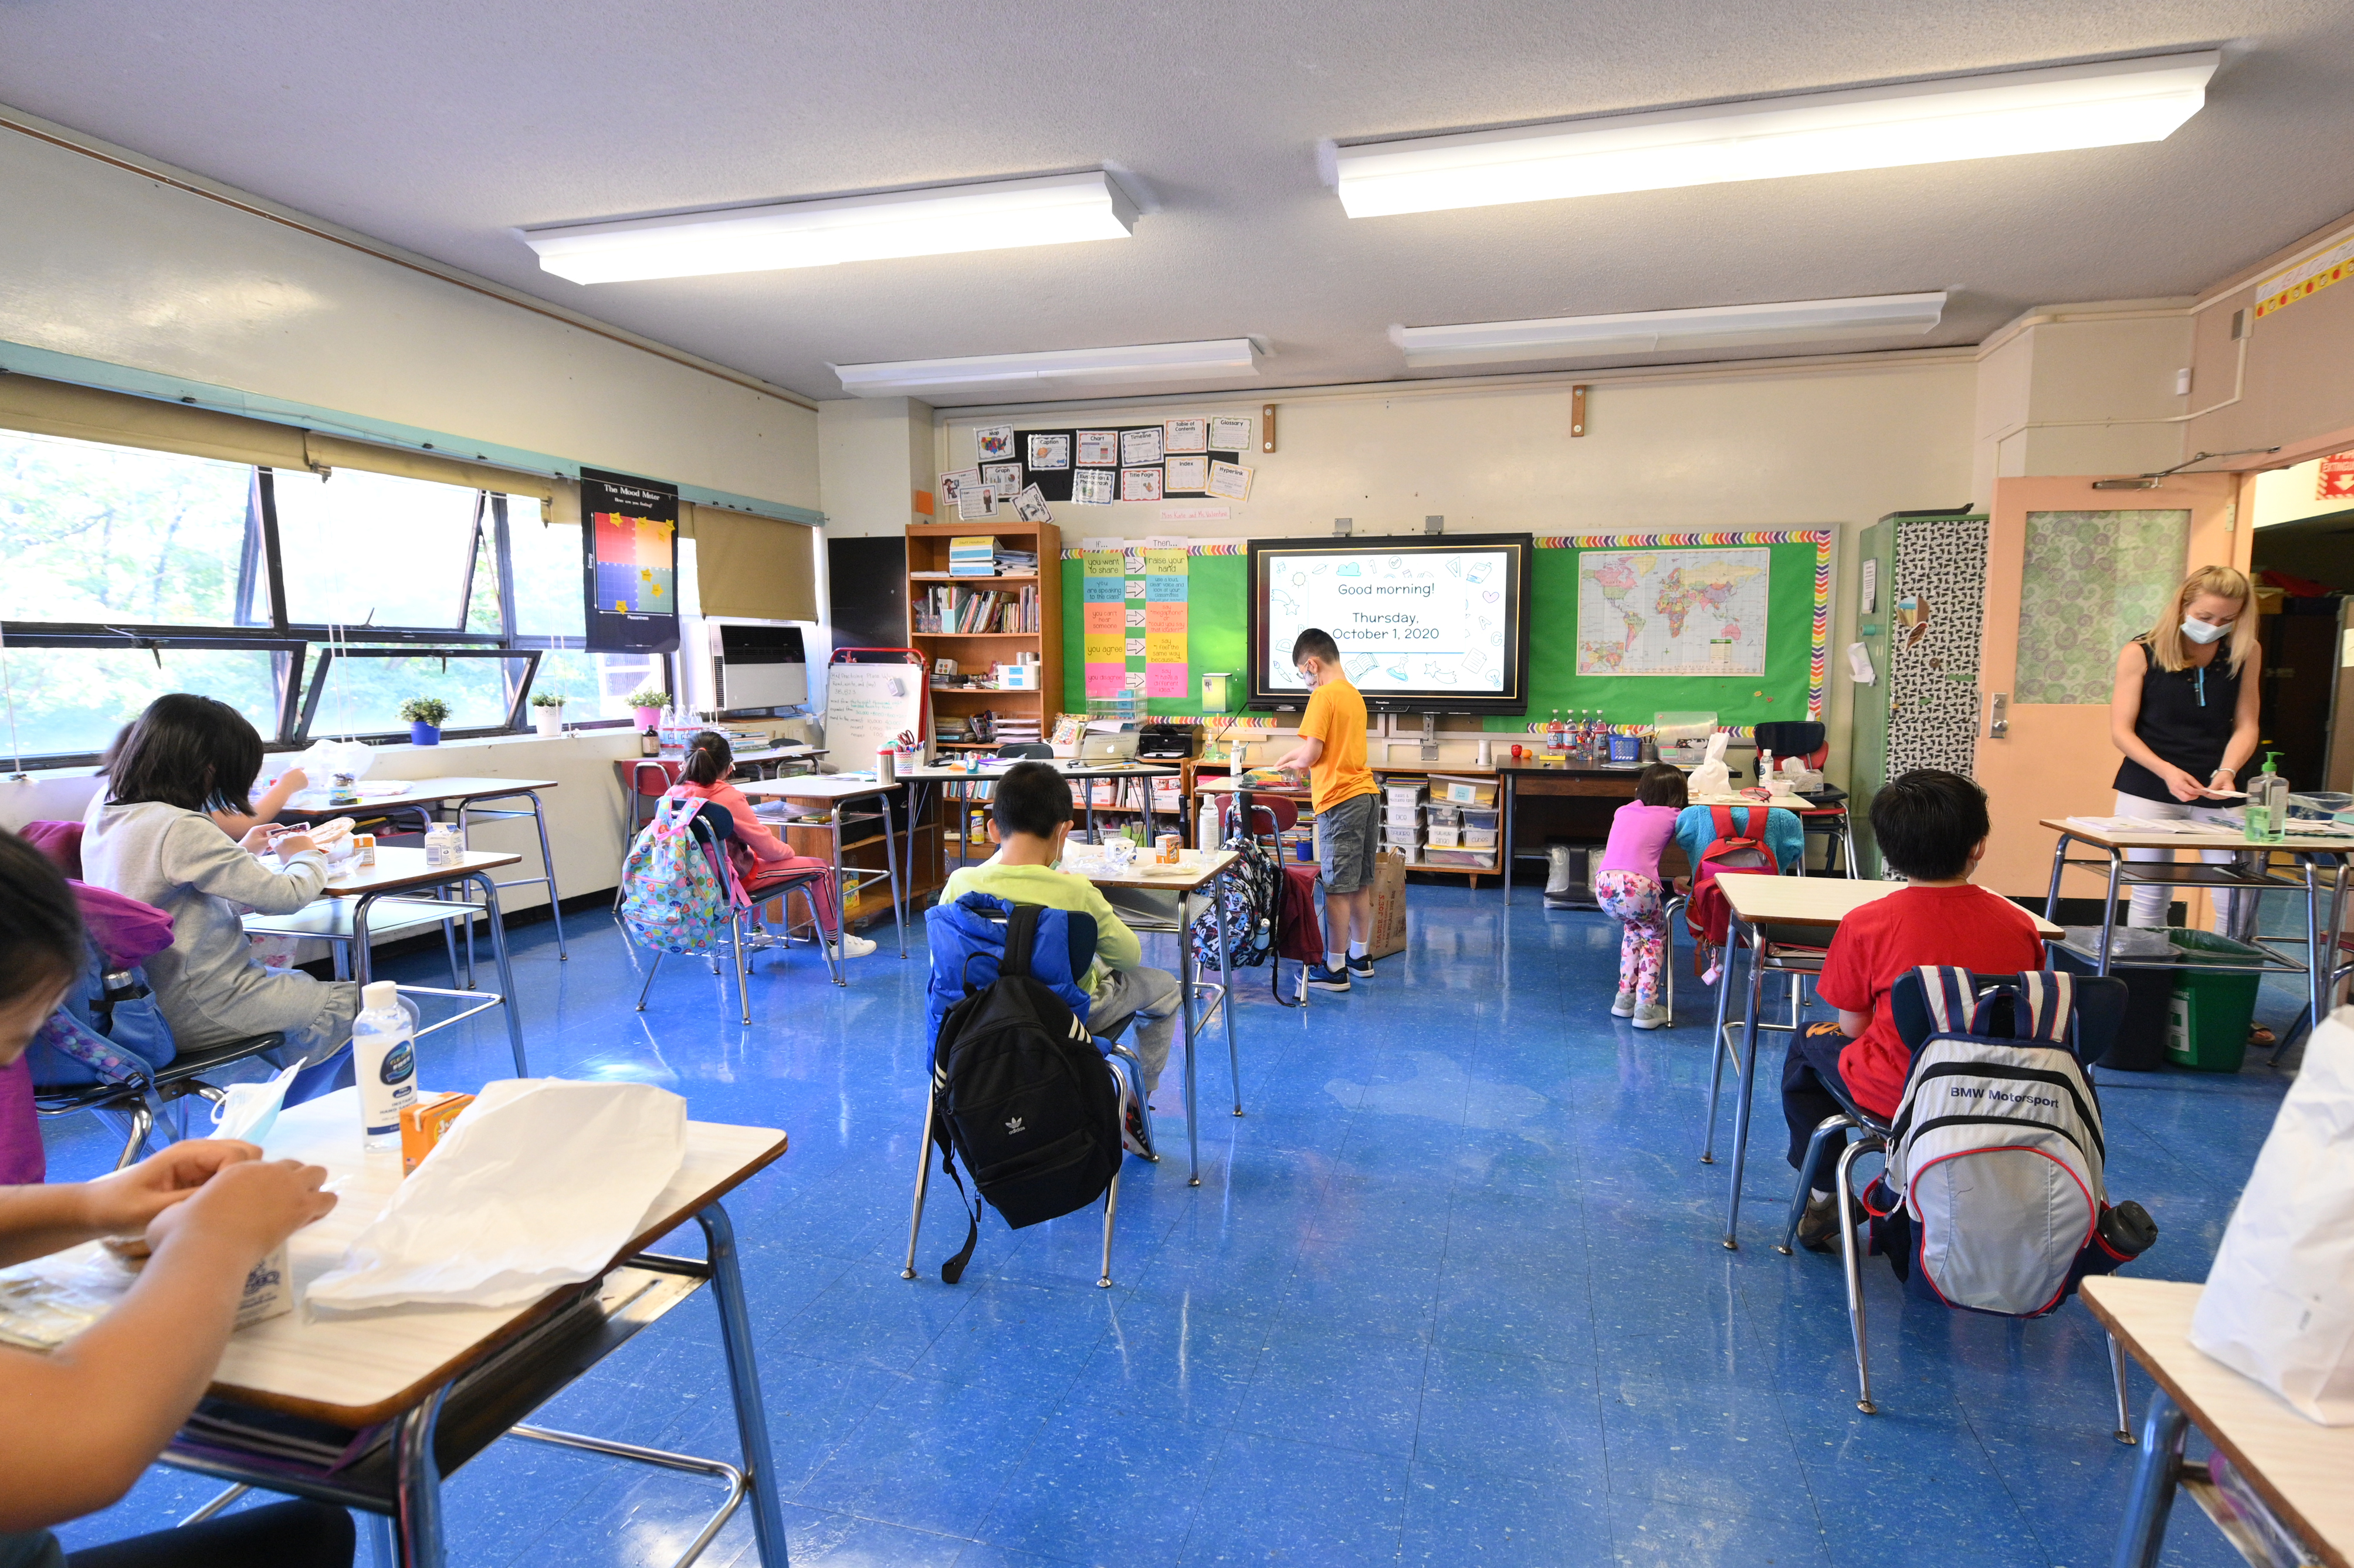 Children sit in a classroom with desks spaced six feet apart. A teacher wearing a mask stands at the front.